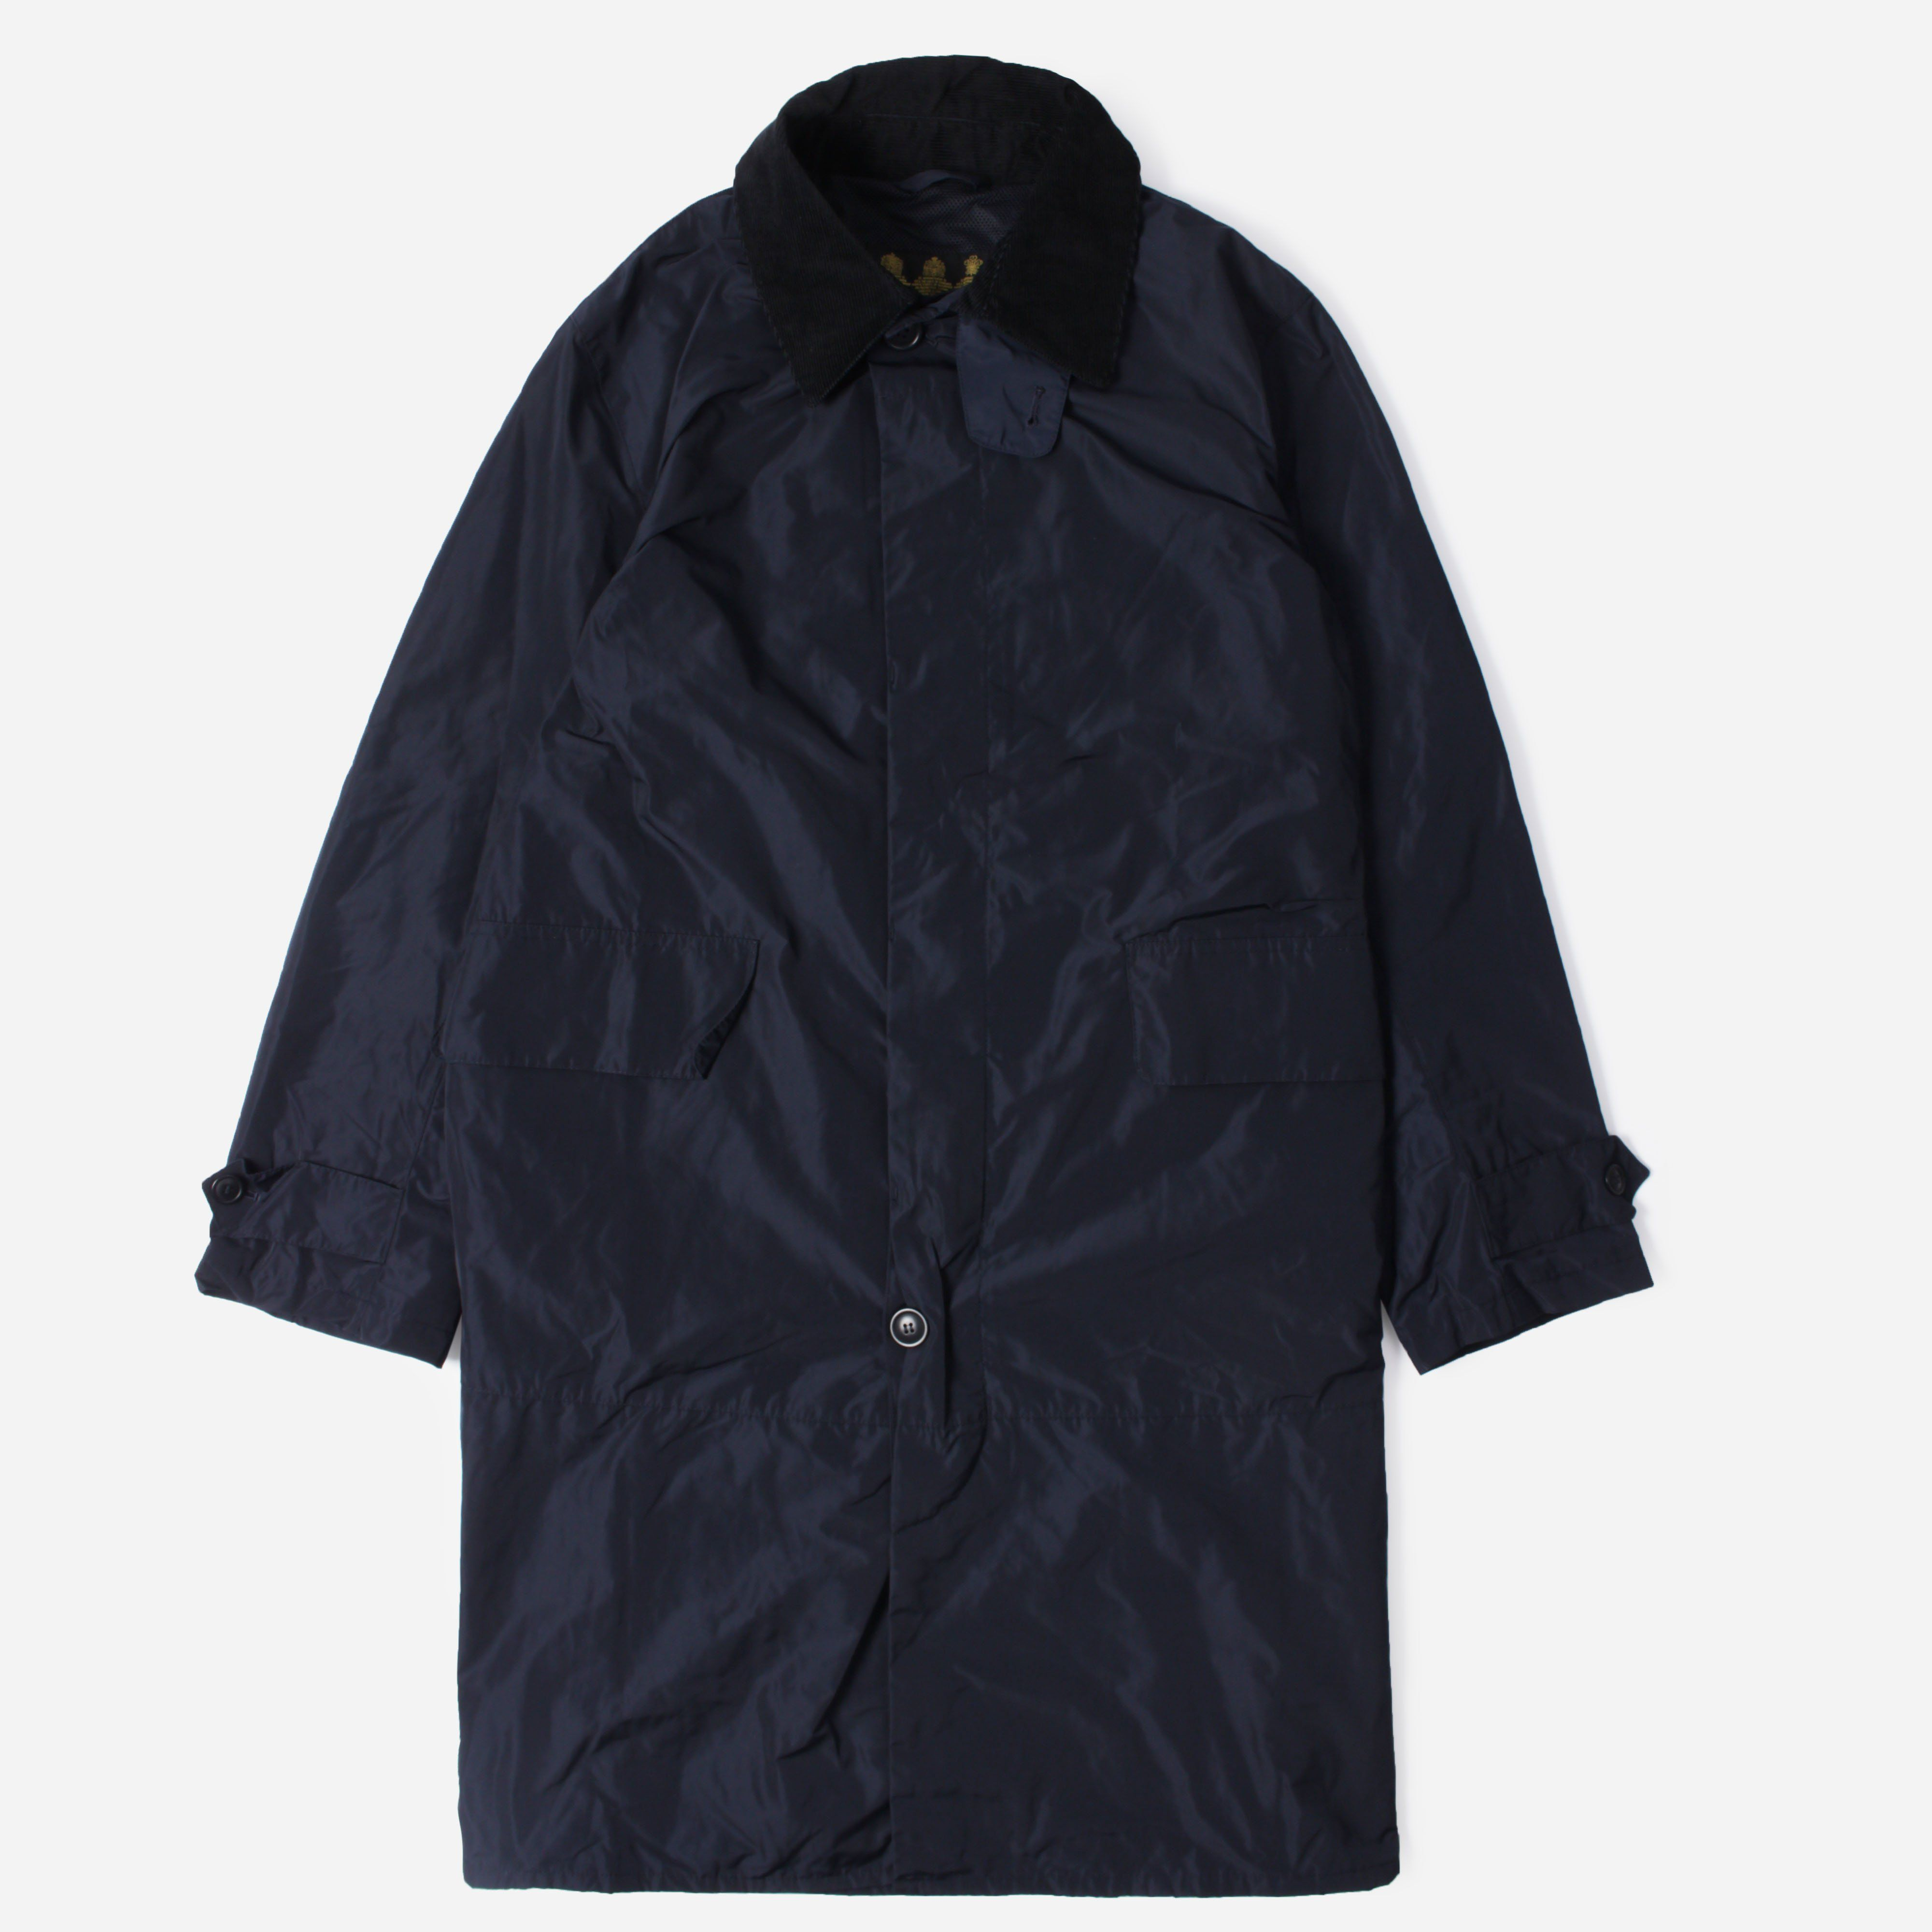 Barbour MCA0564 MADE FOR JAPAN BALCOLLAR CASUAL